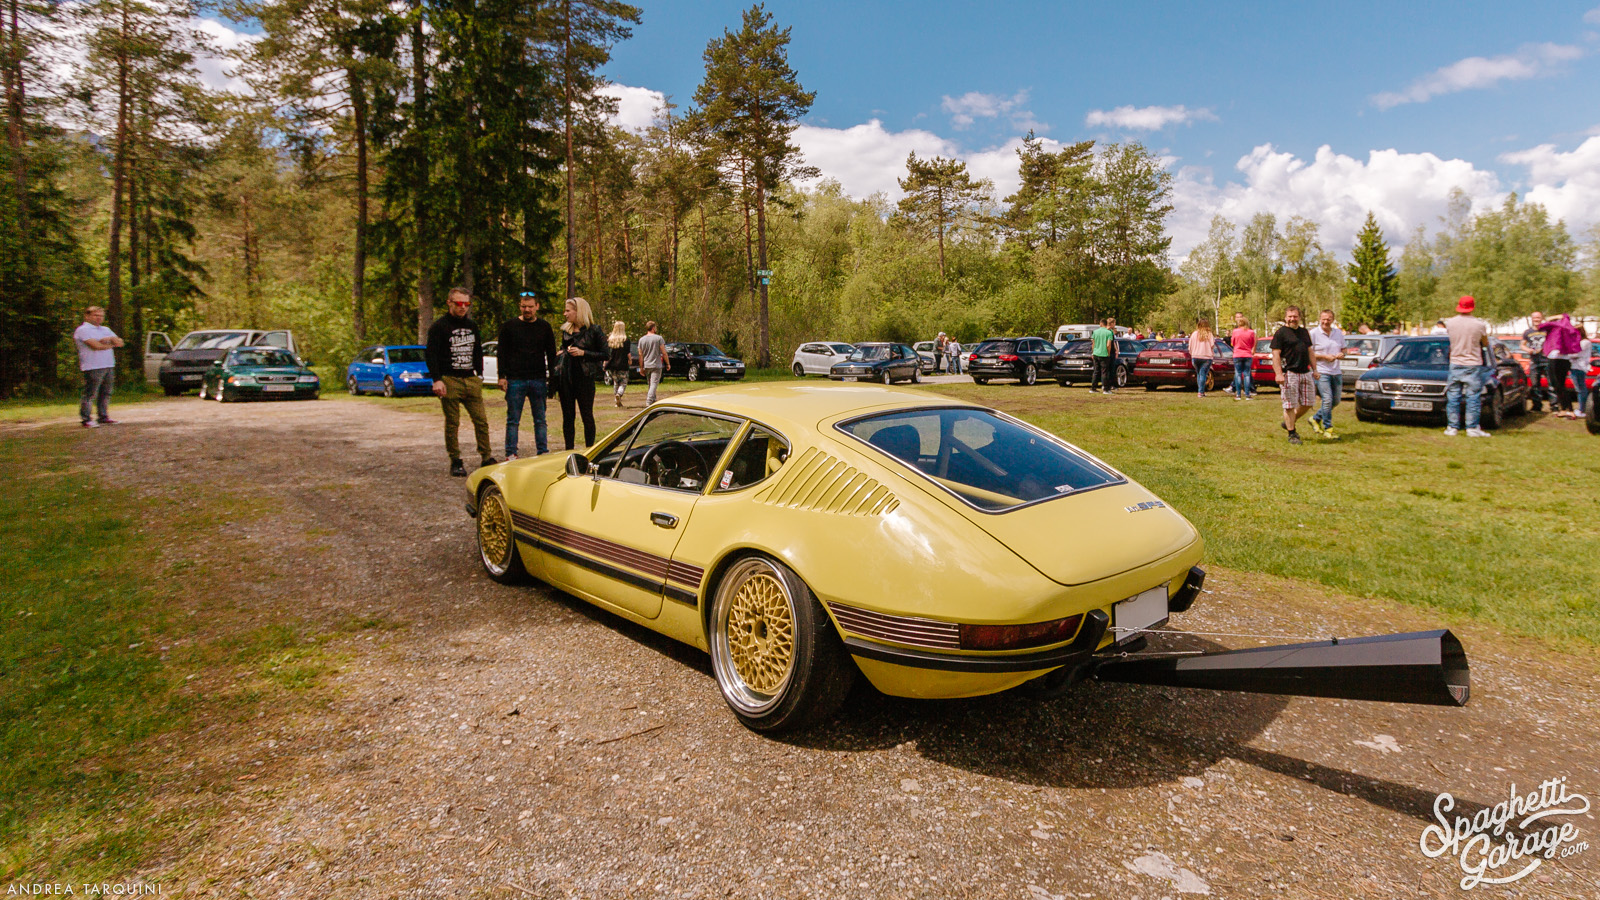 VW SP2 – From Amazon River to Wörthersee Lake